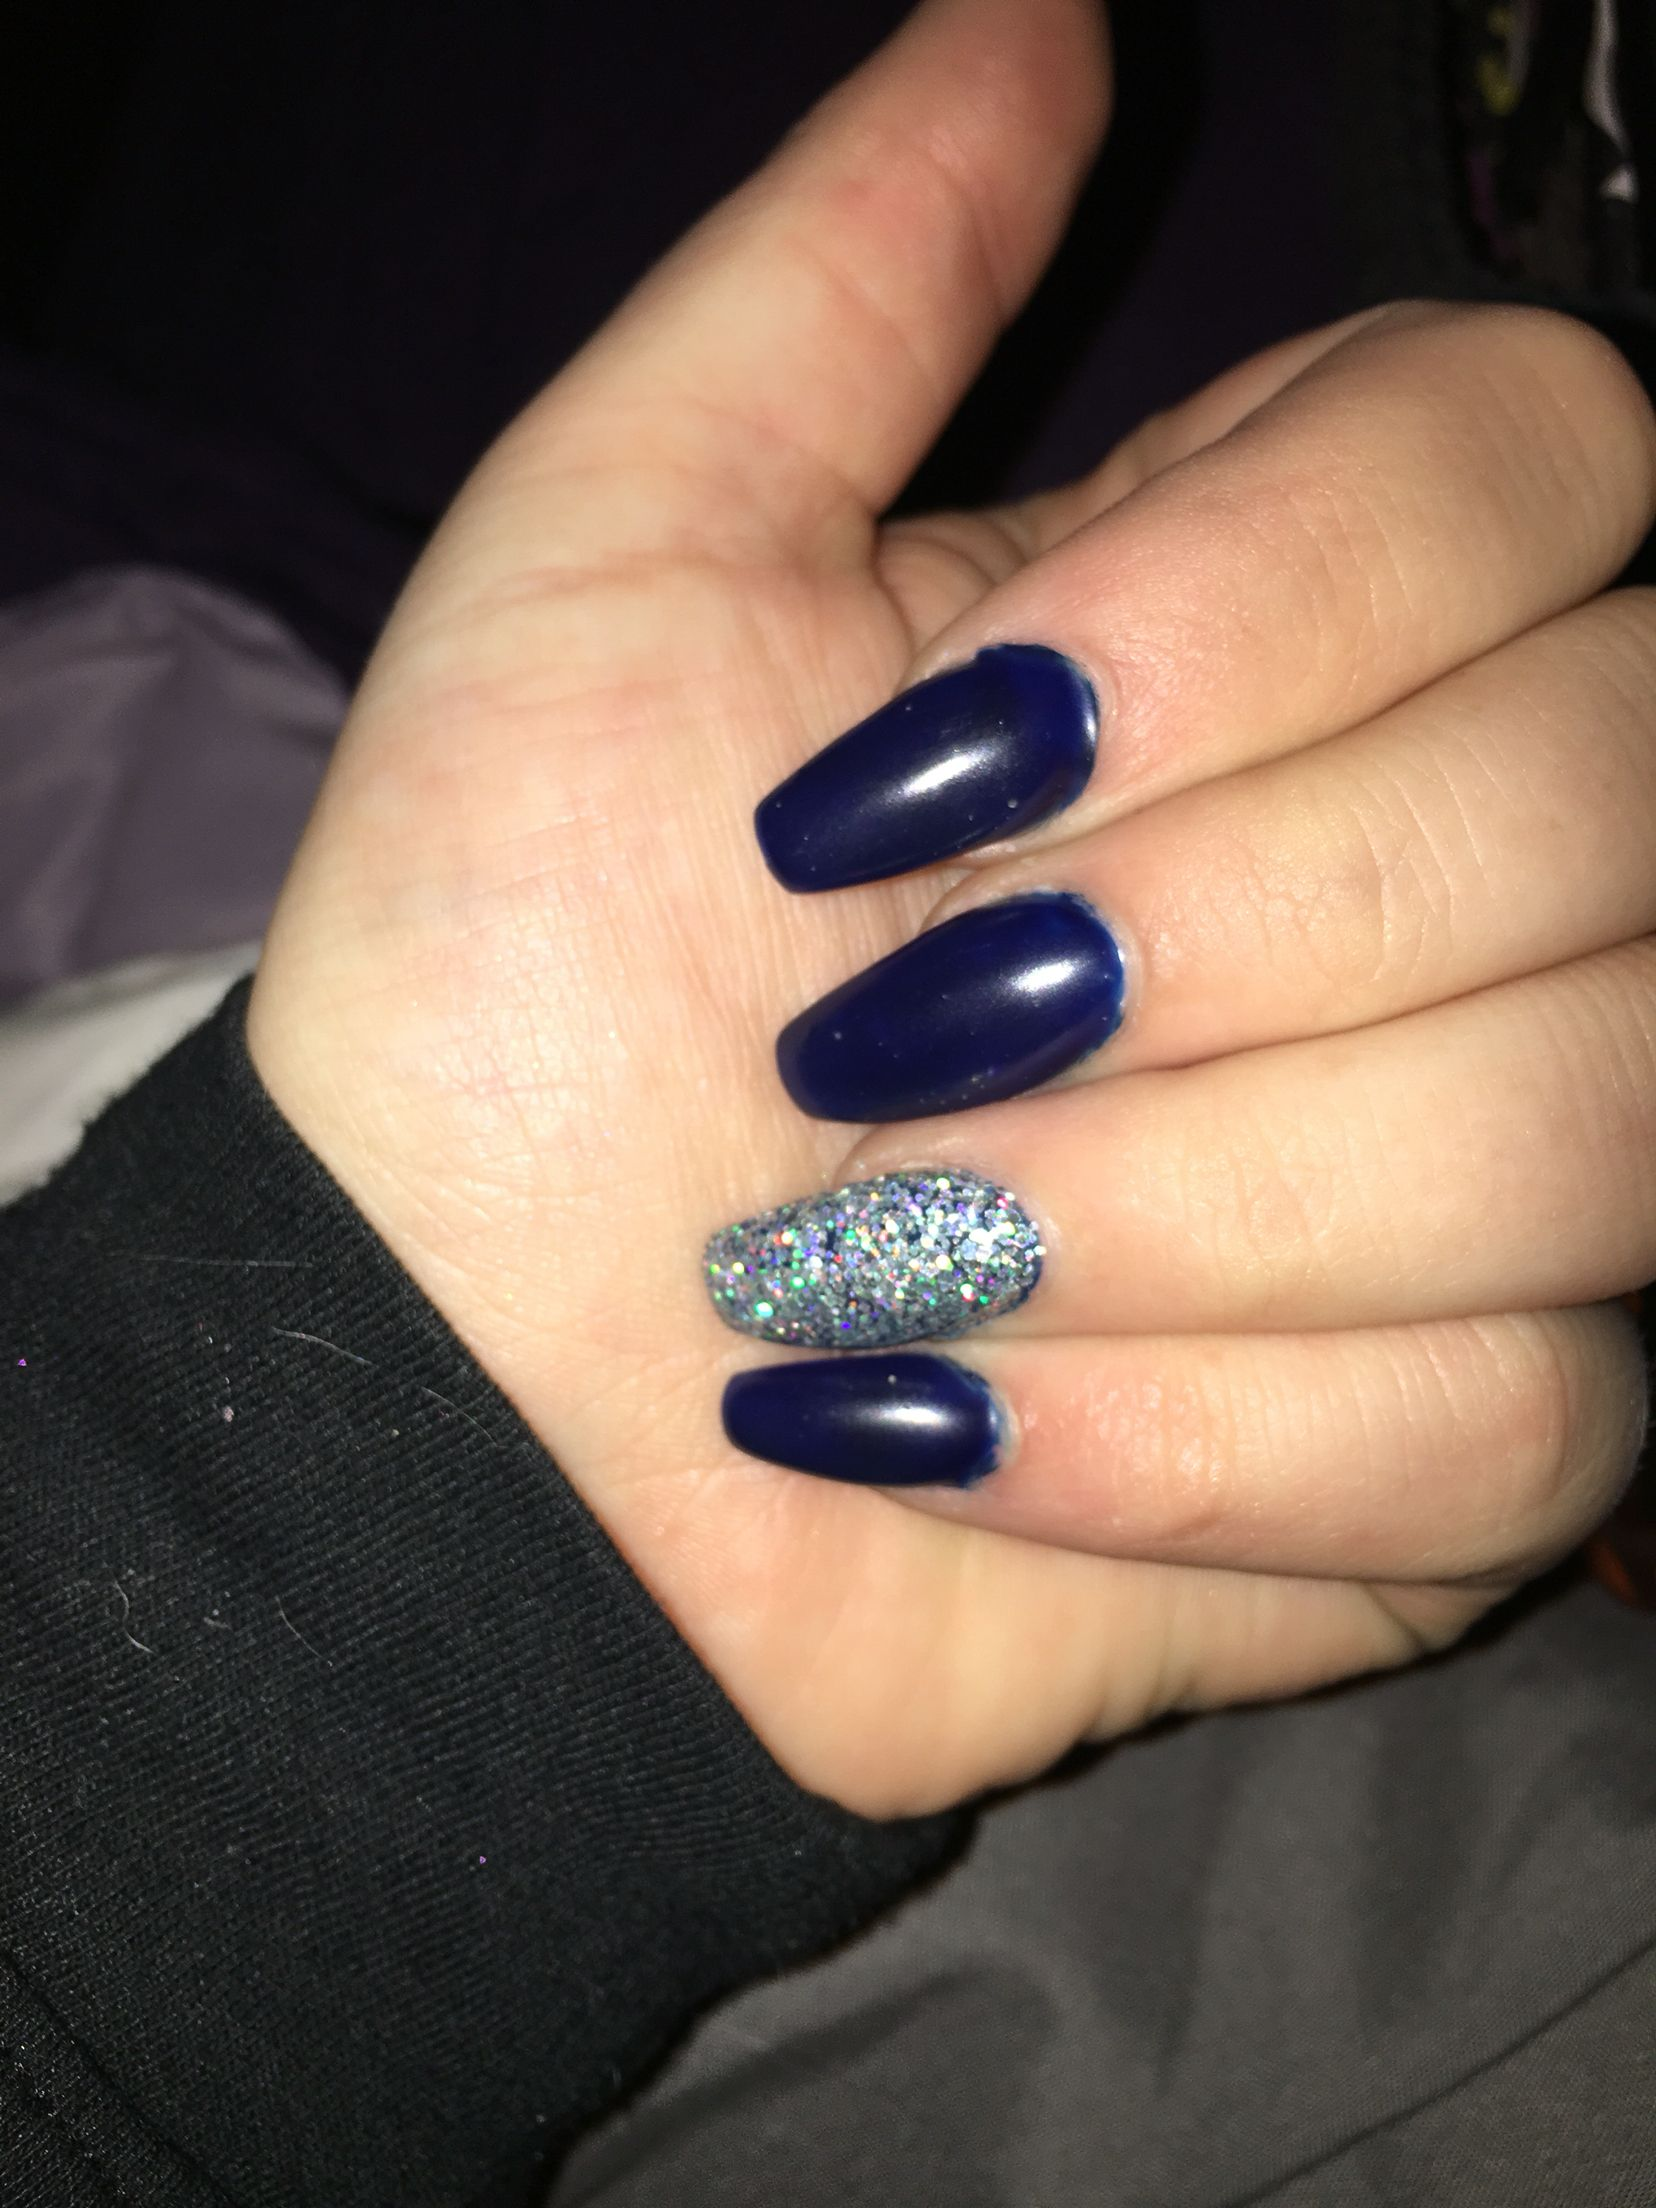 Navy Blue And Silver Coffin Shaped Nails For Prom Nails